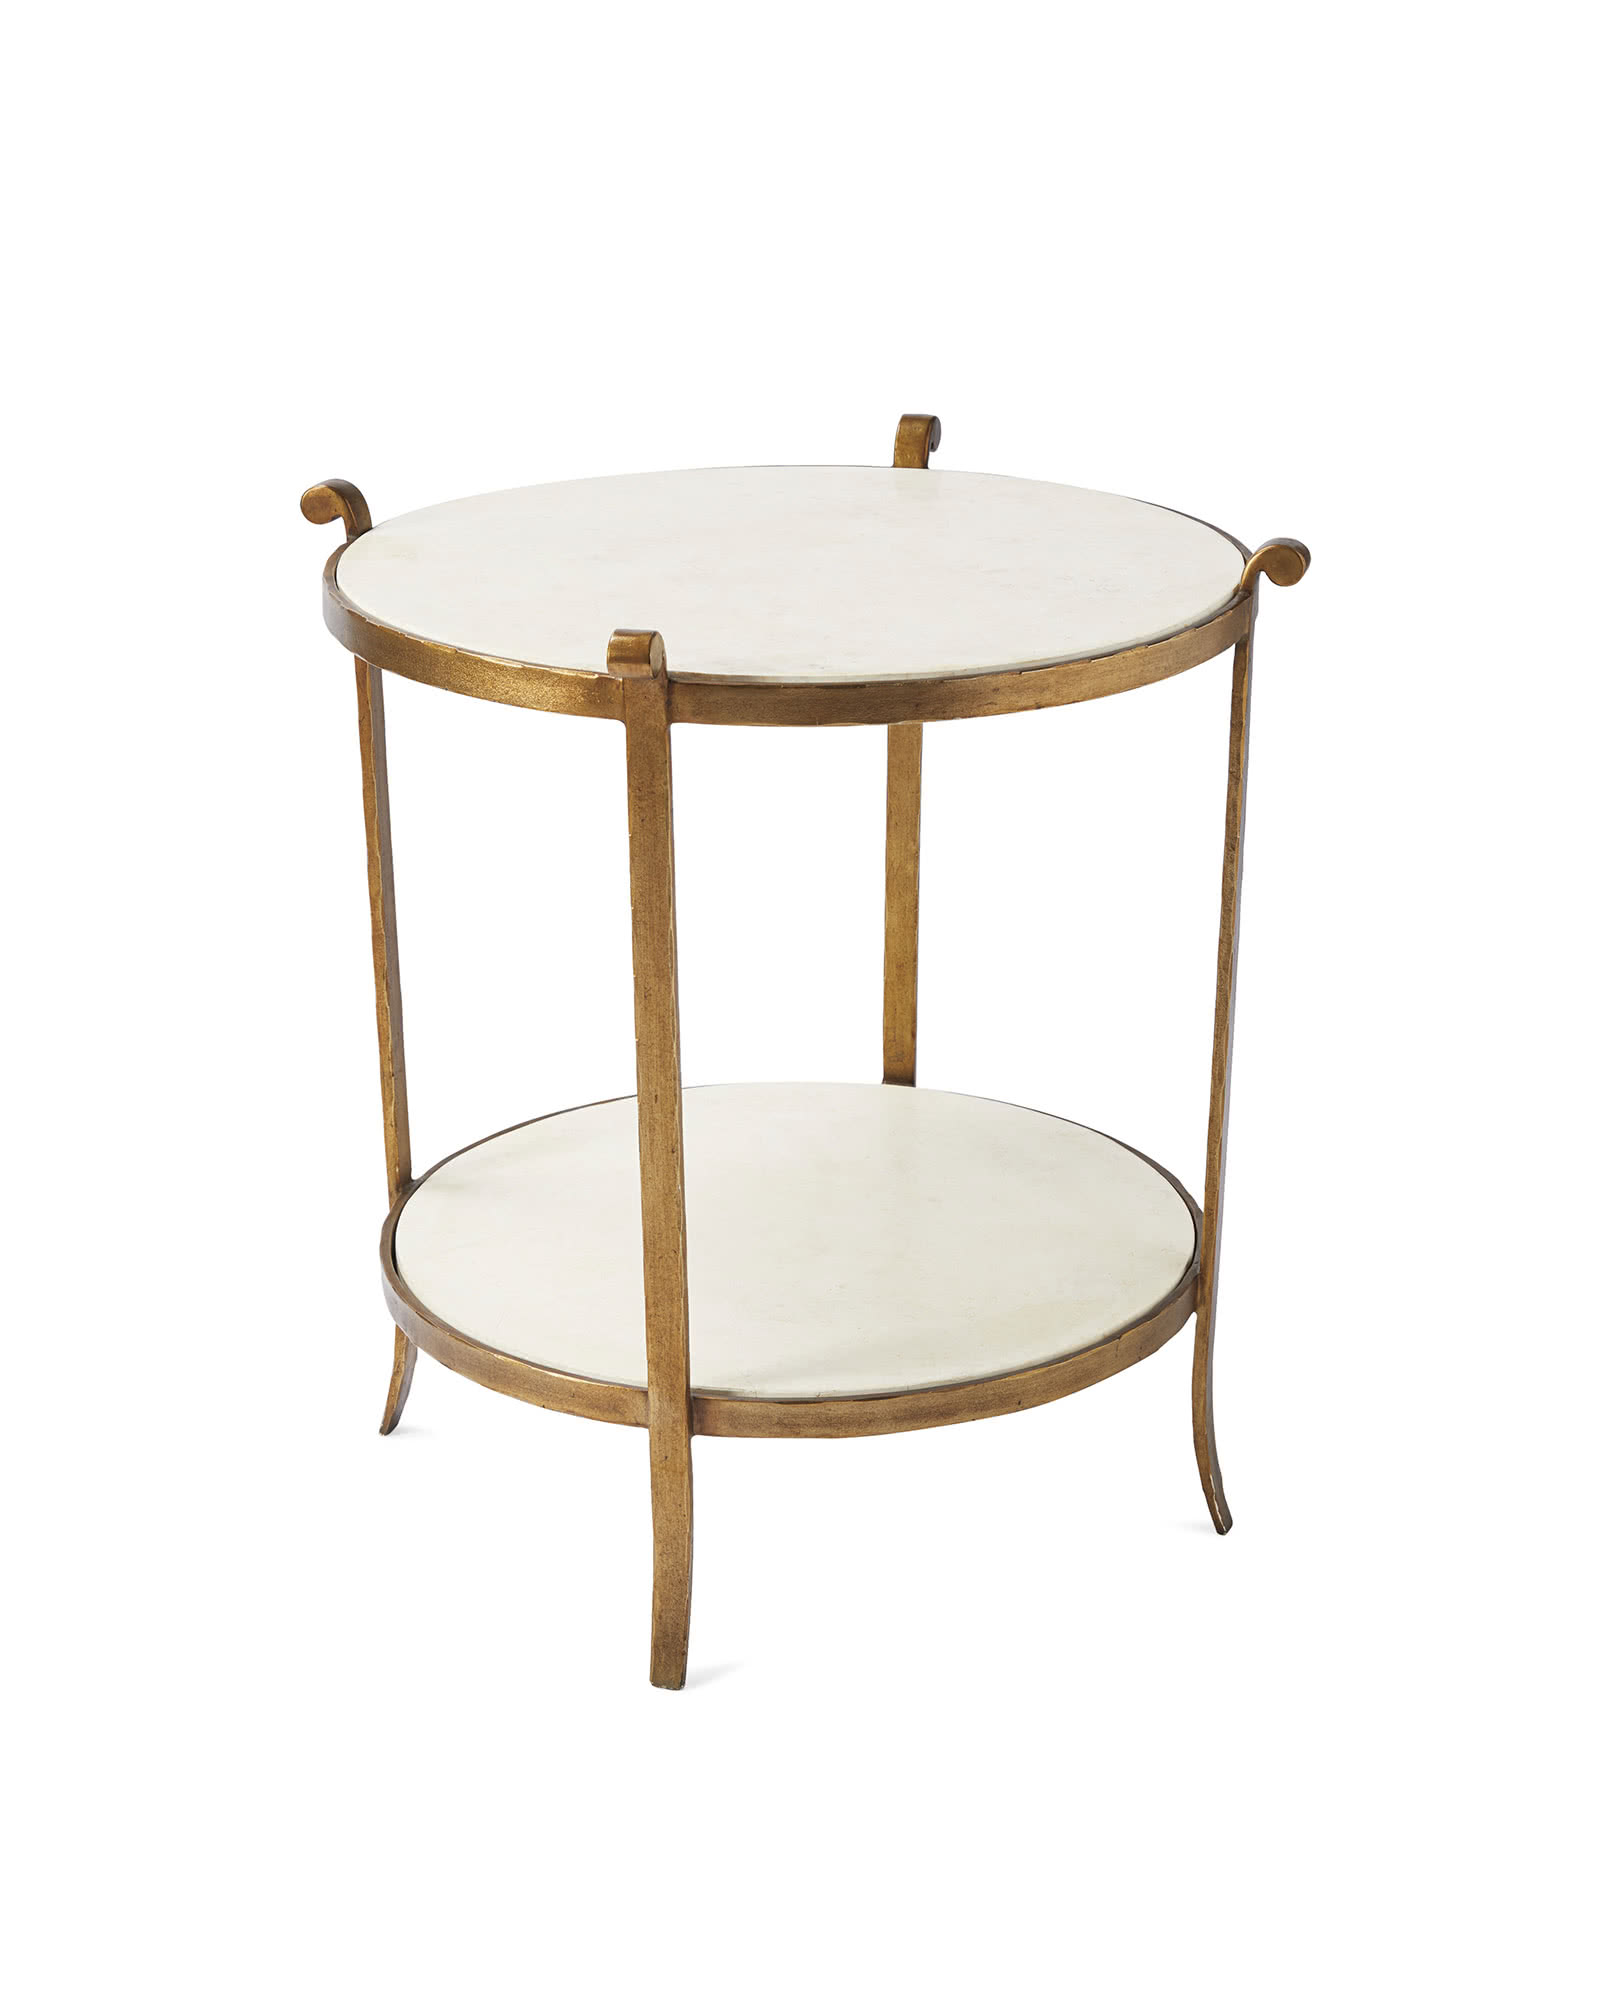 St. Germain Round Side Table,